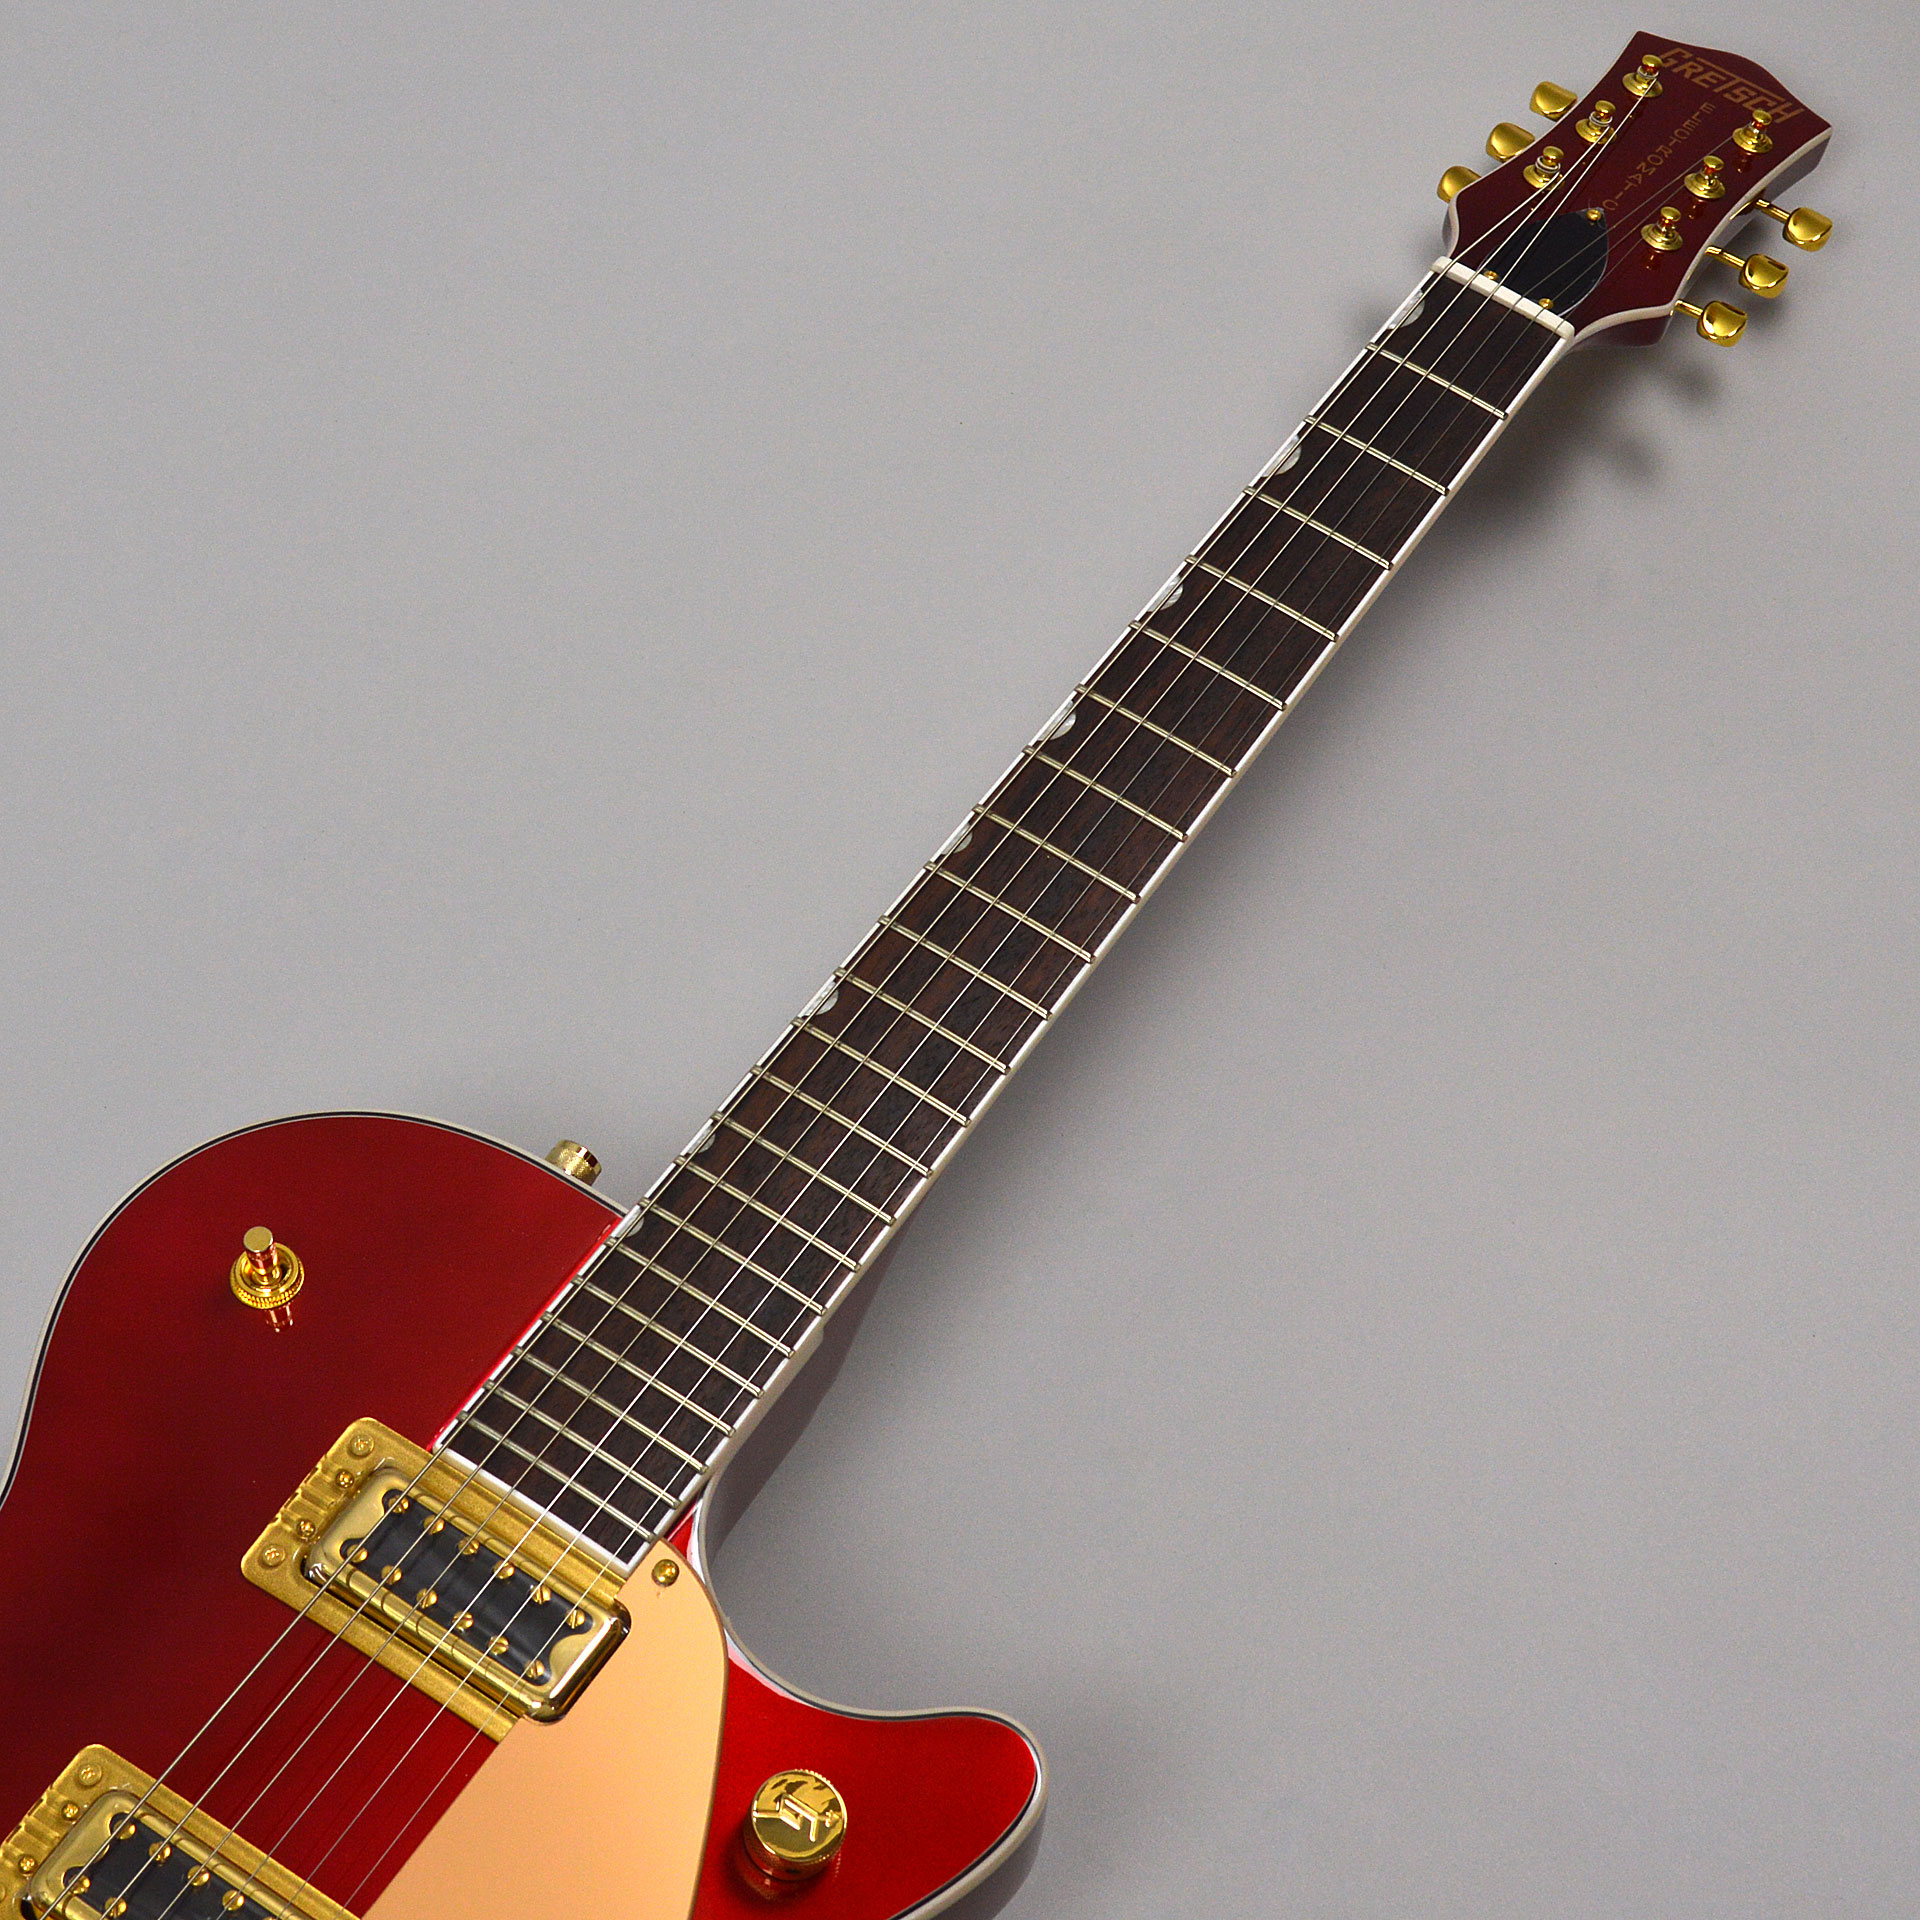 G5435TG Limited Edition Pro Jet with Bigsby Candy Apple Redの指板画像